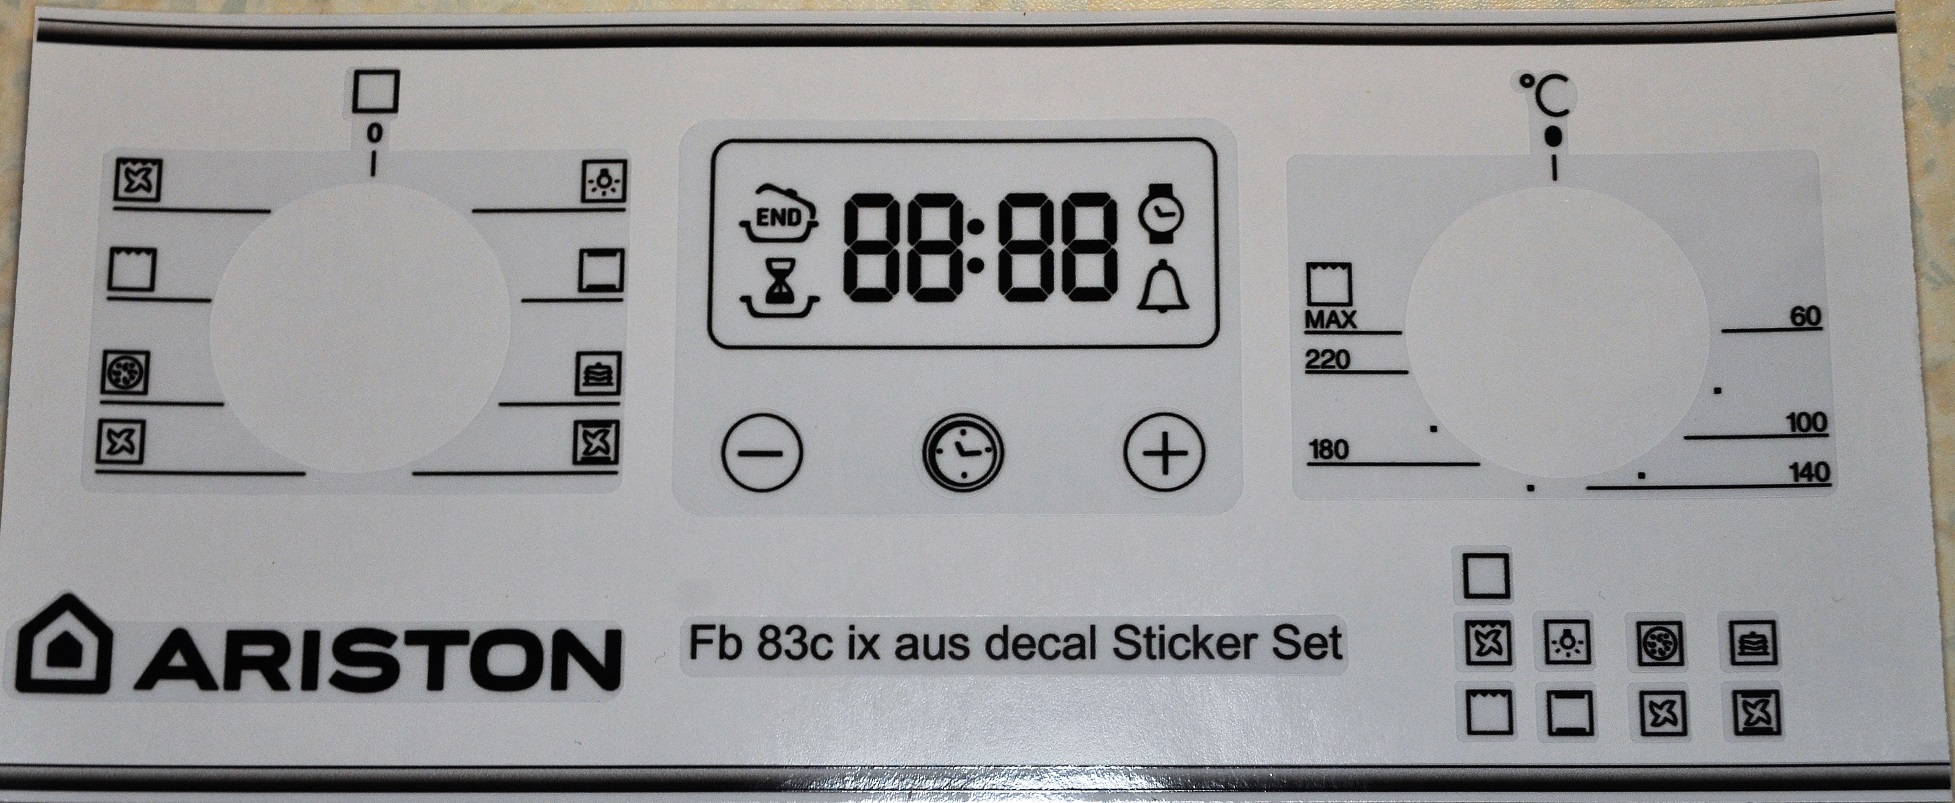 Ariston FB 83C IX front panel sticker set.